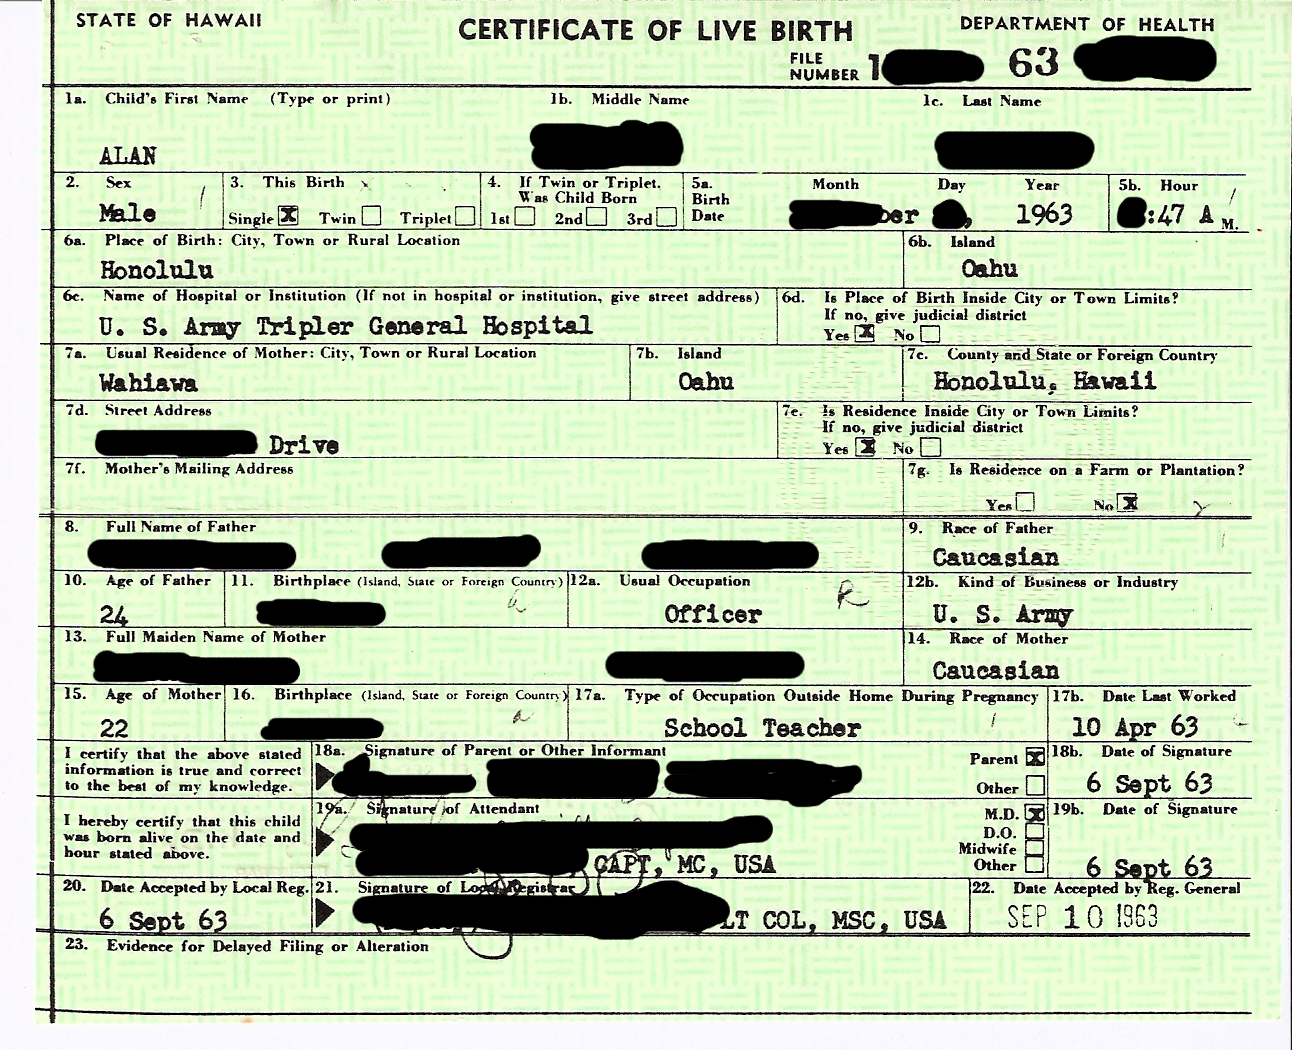 Hawaii birth certificate 1963 snarkybytes hawaii birth certificate 1963 yadclub Image collections